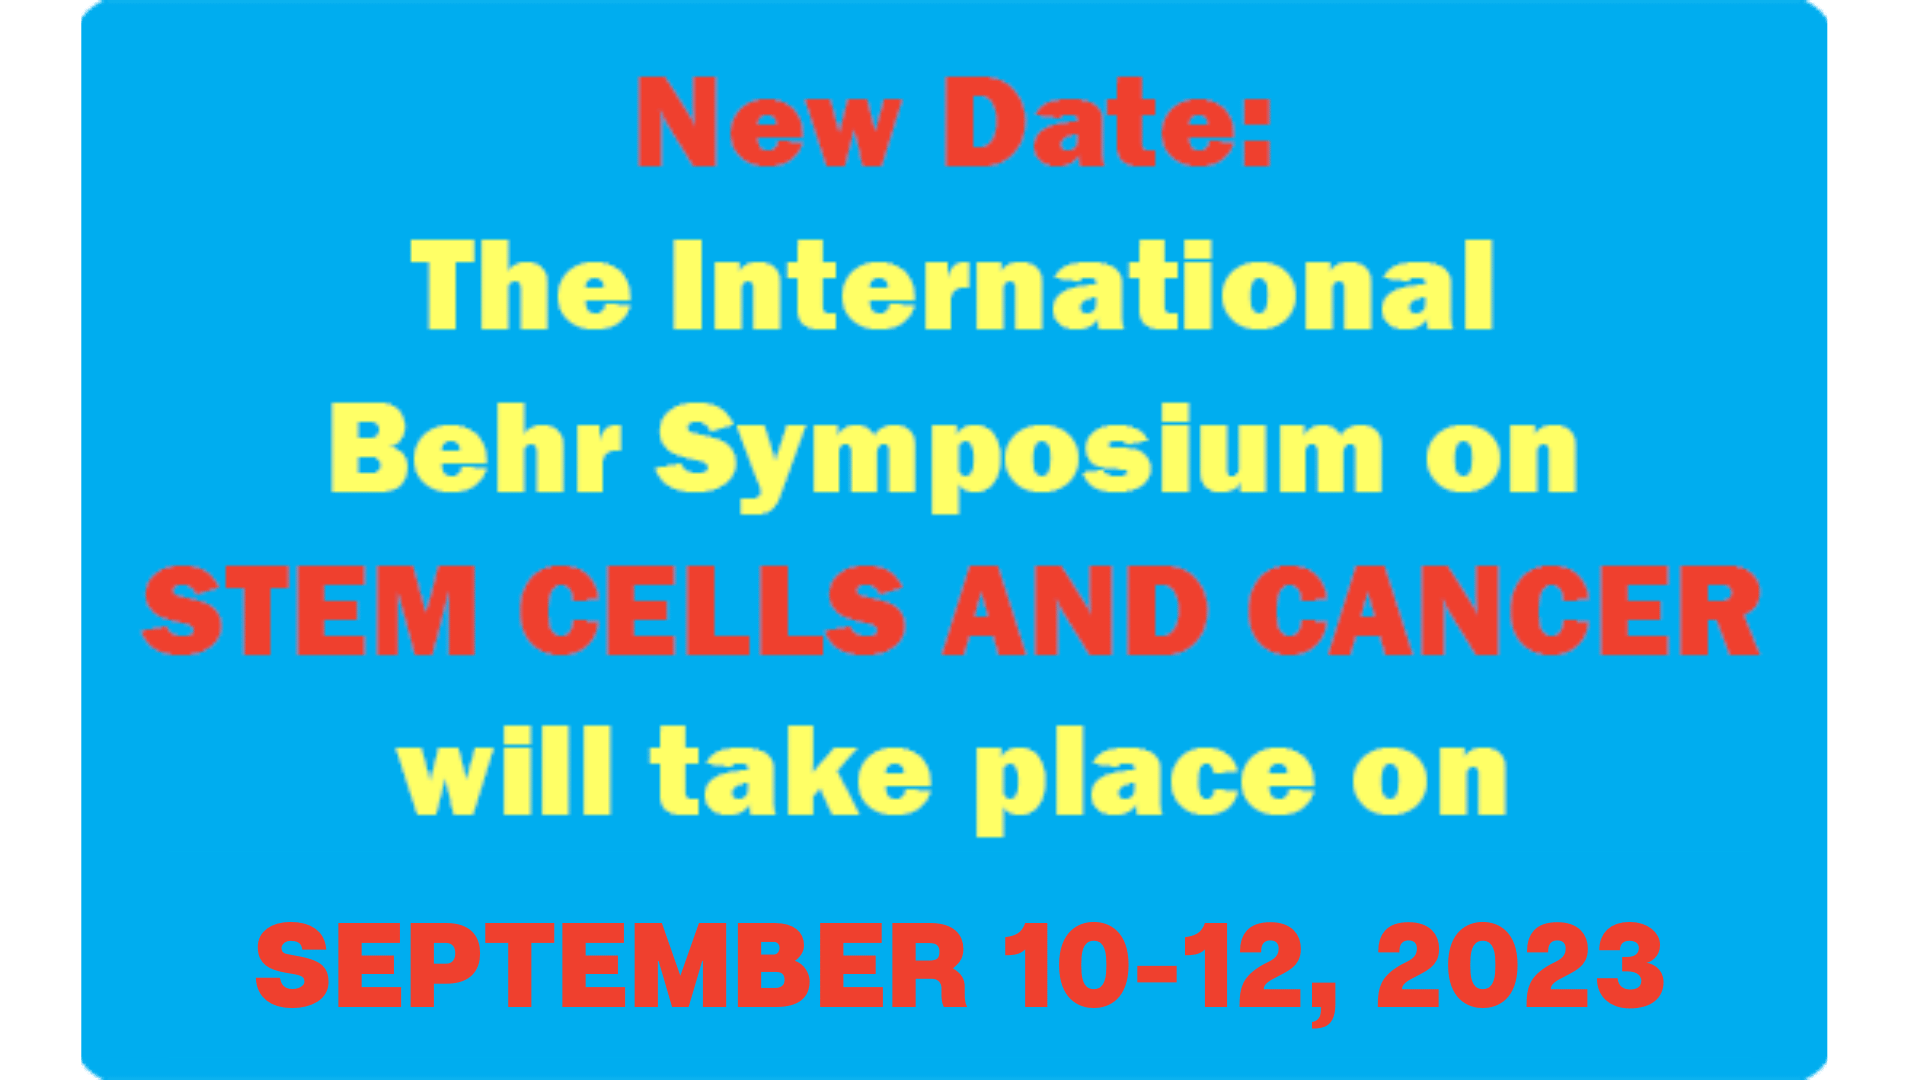 The 11th International Behr Symposium on  STEM CELLS AND CANCER will take place in September 2021